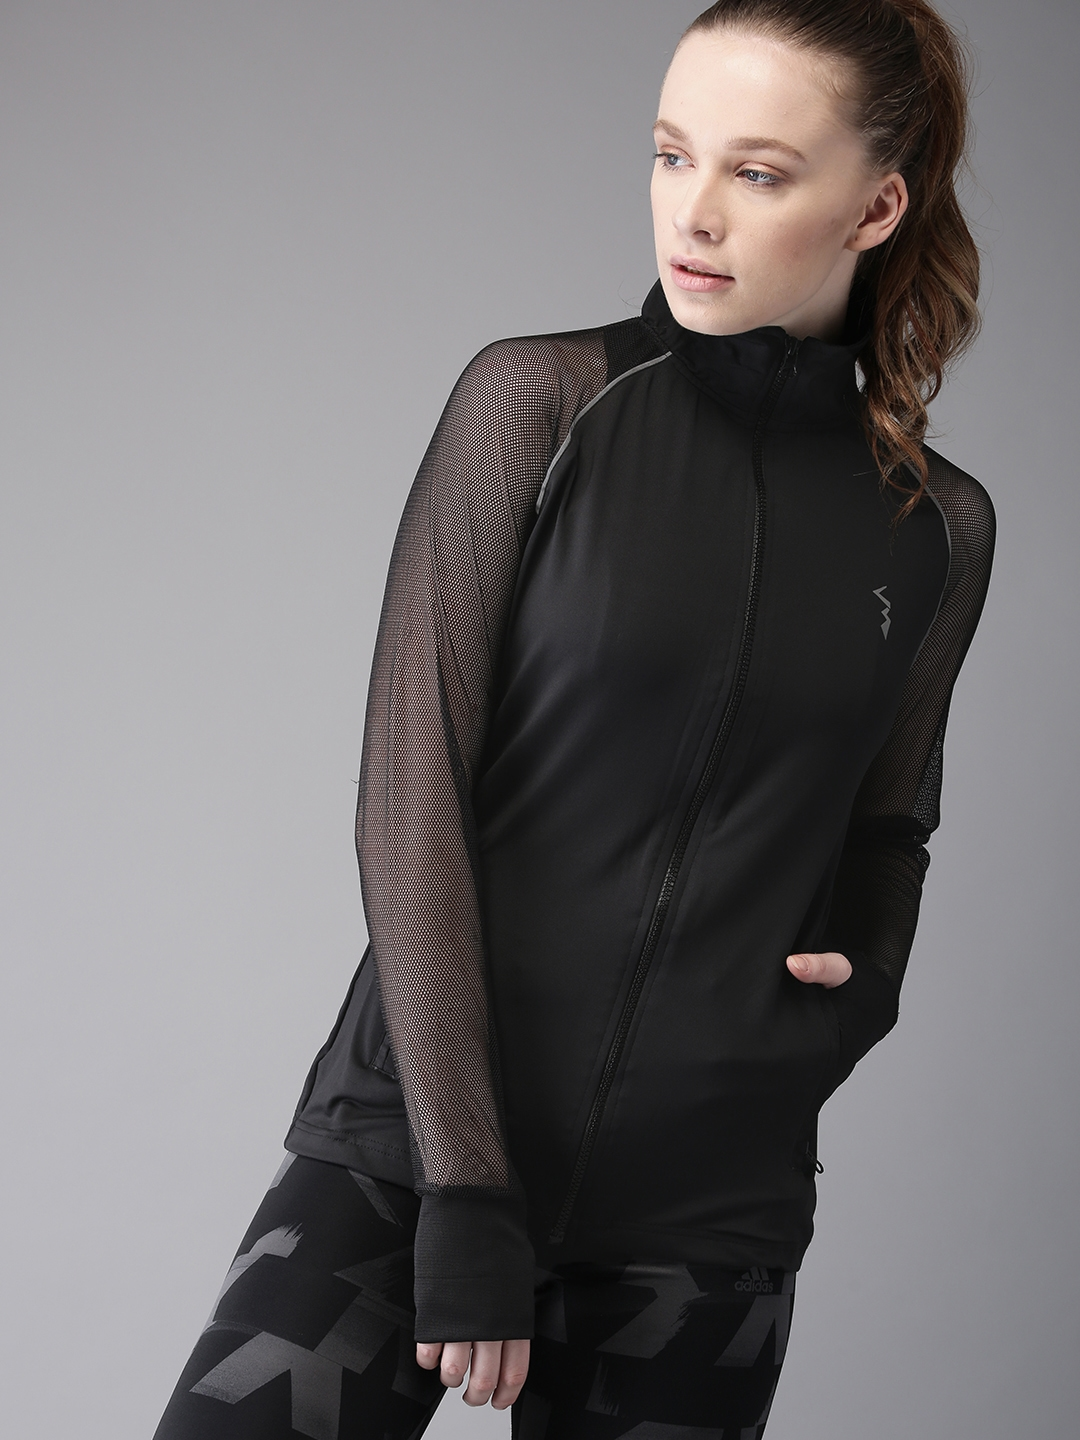 Campus Sutra Women Black Solid Jacket